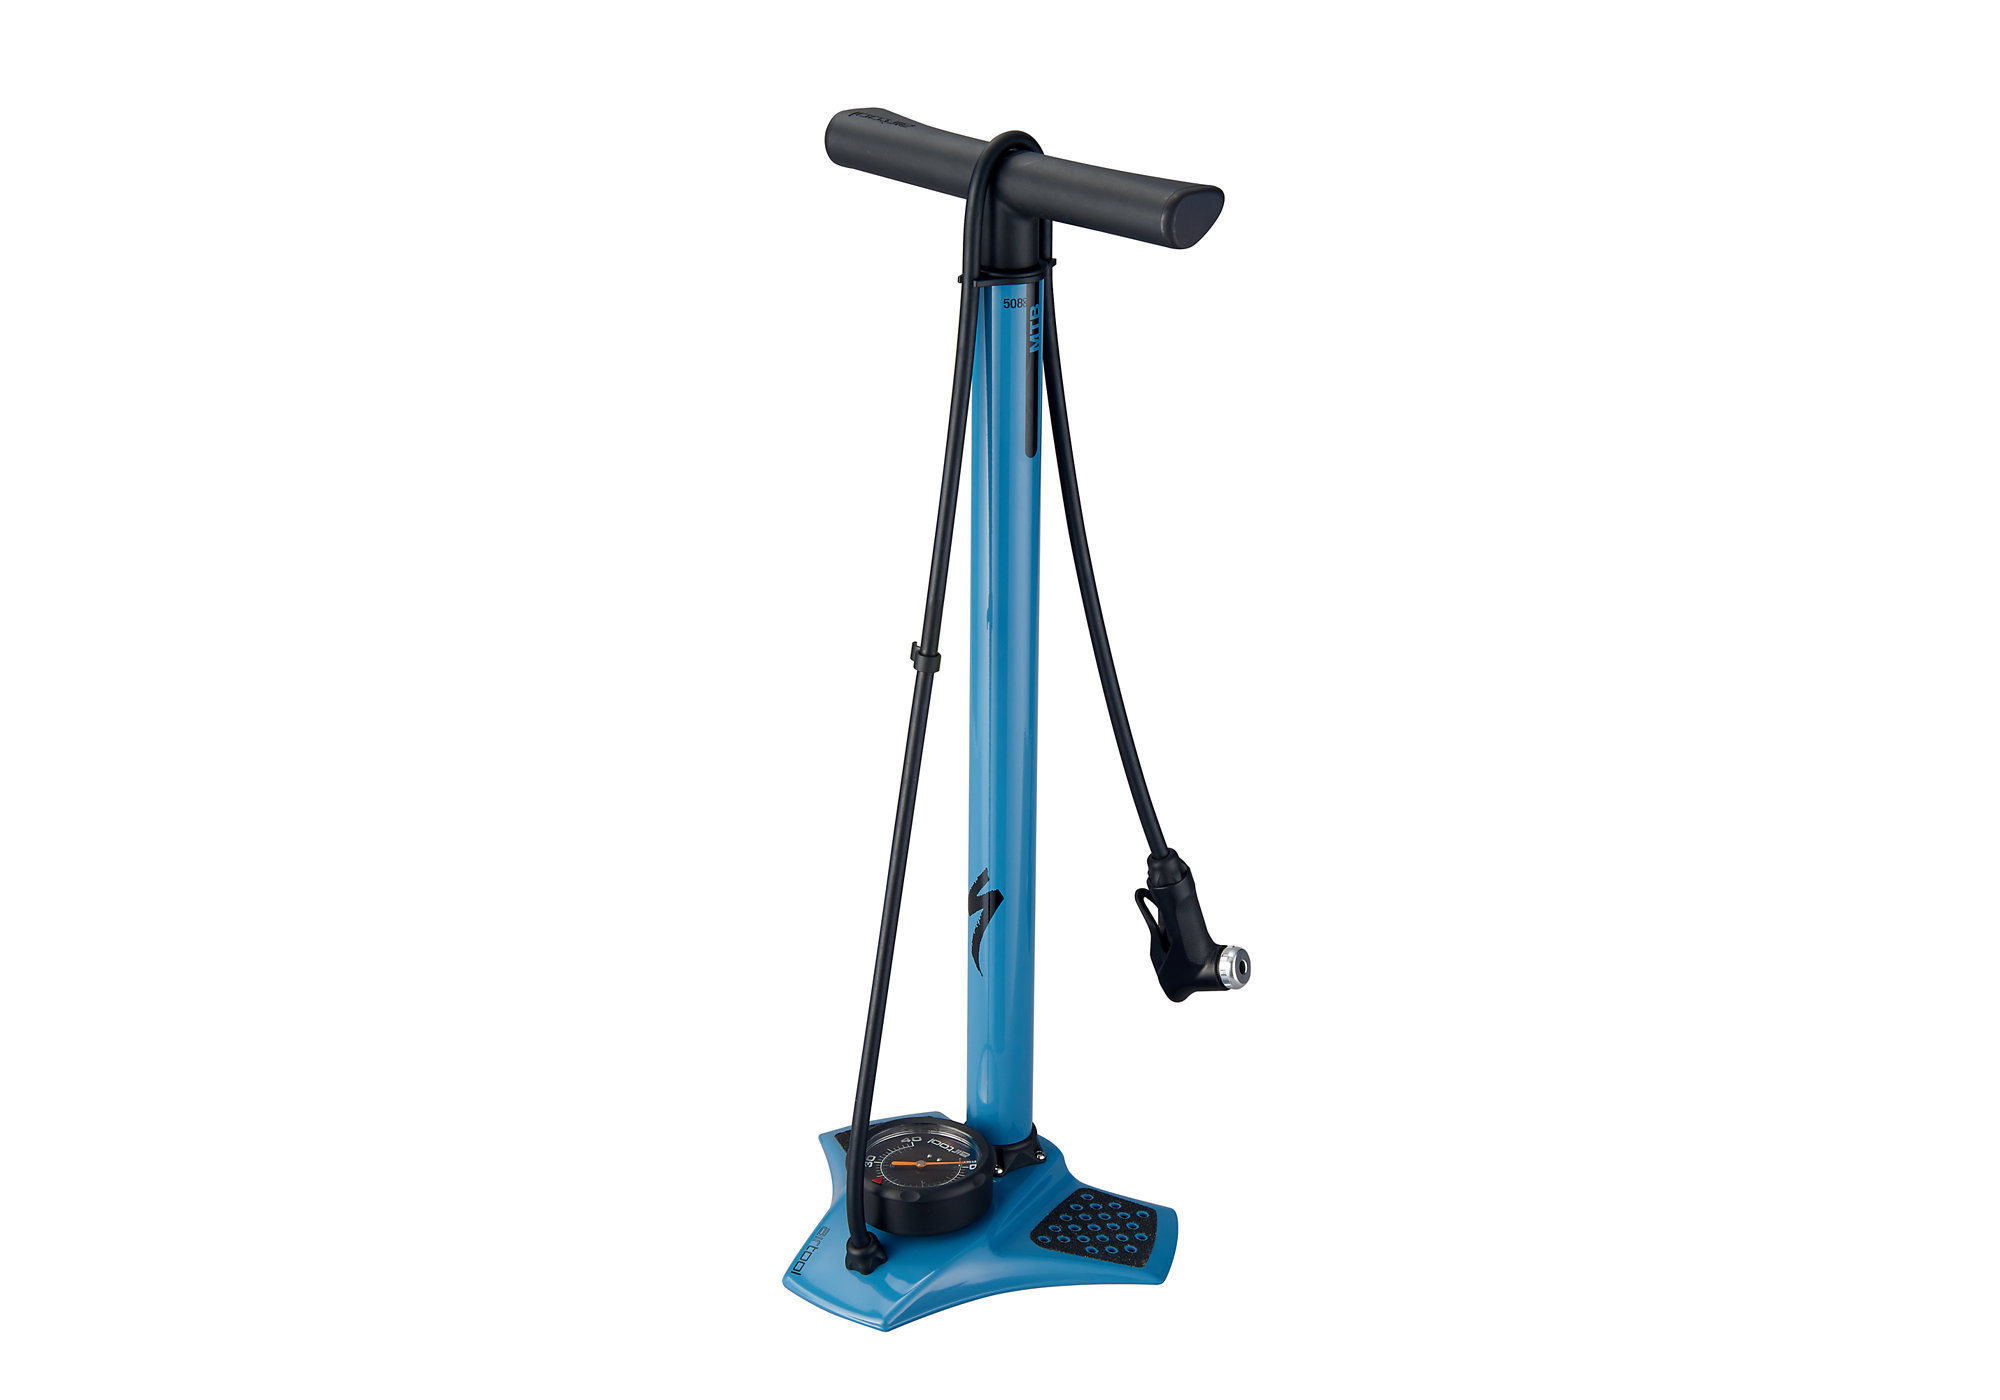 Specialized Specialized Airtool MTB Floor Pump